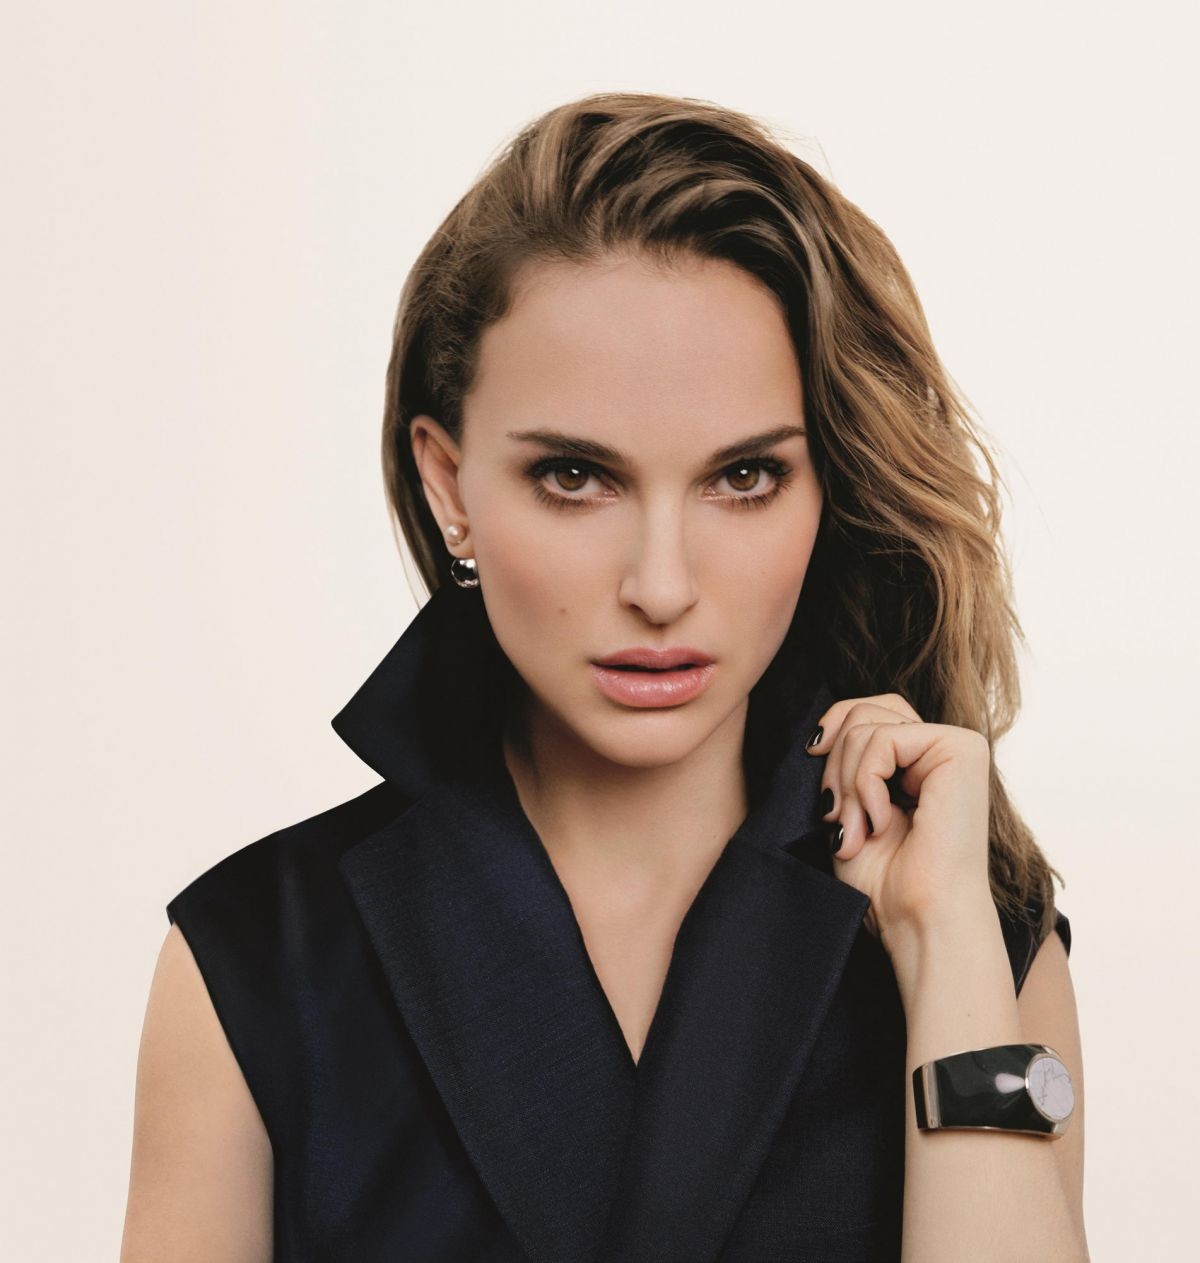 natalie portman - photo #36